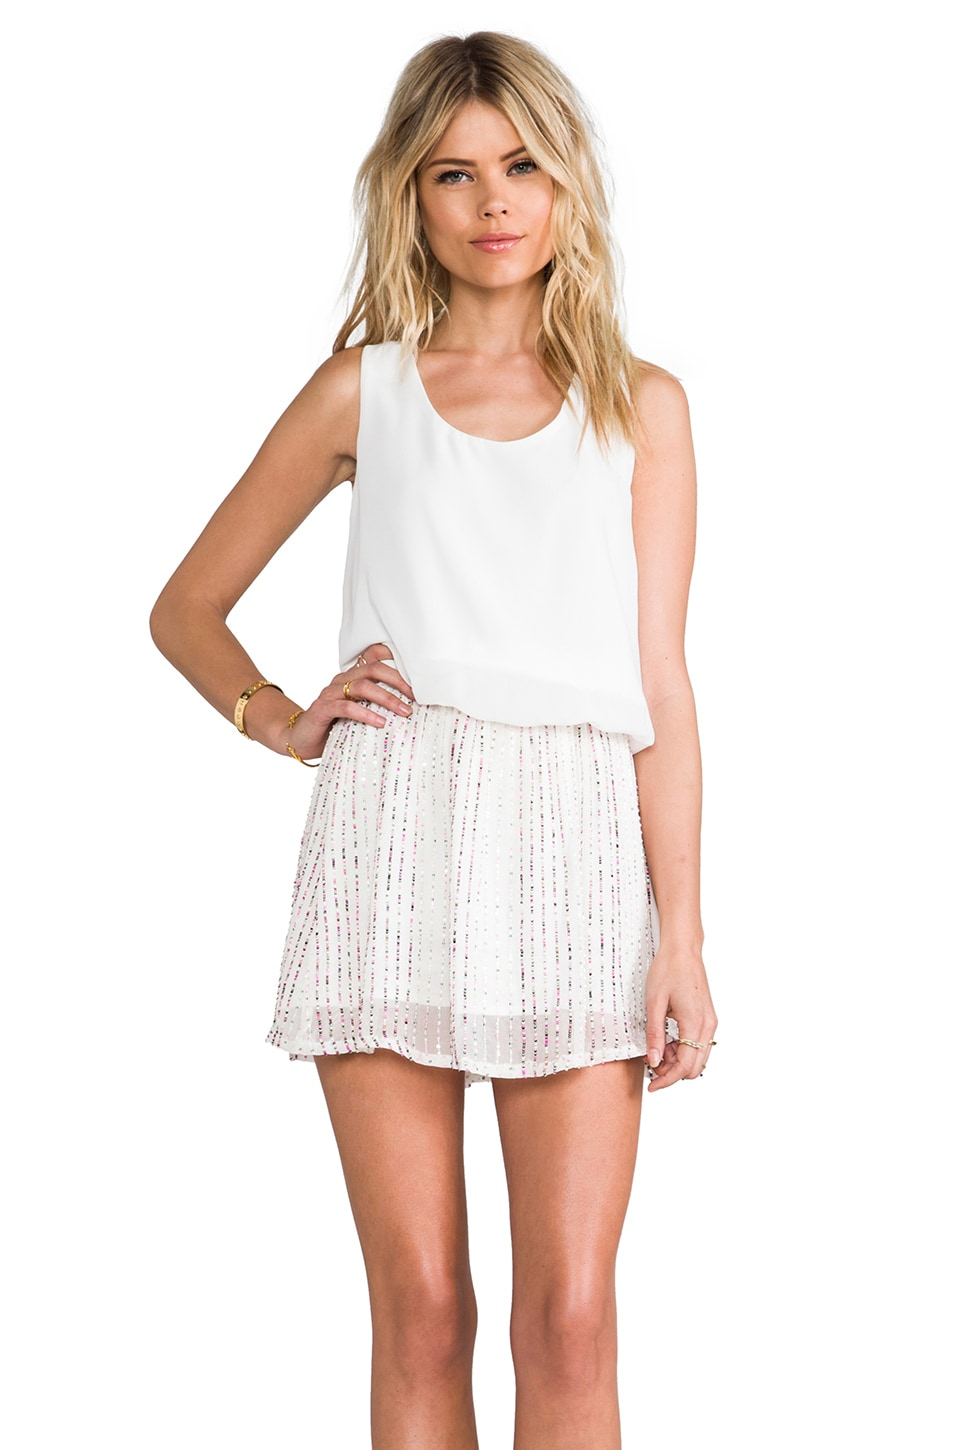 MM Couture by Miss Me Sequin Bottom Dress in White